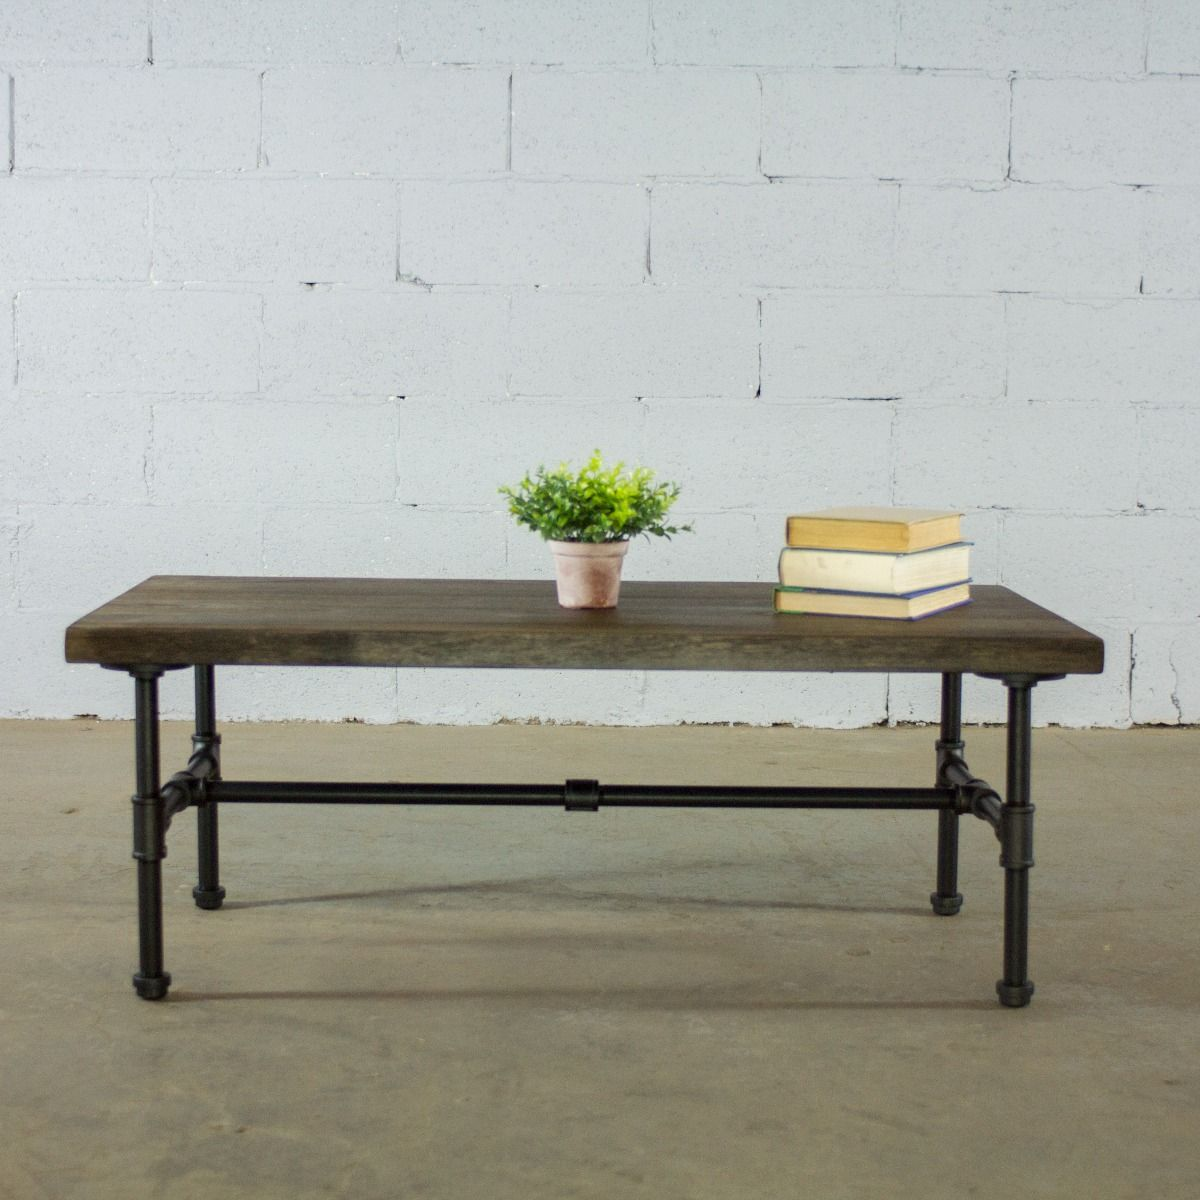 Image result for industrial chic table